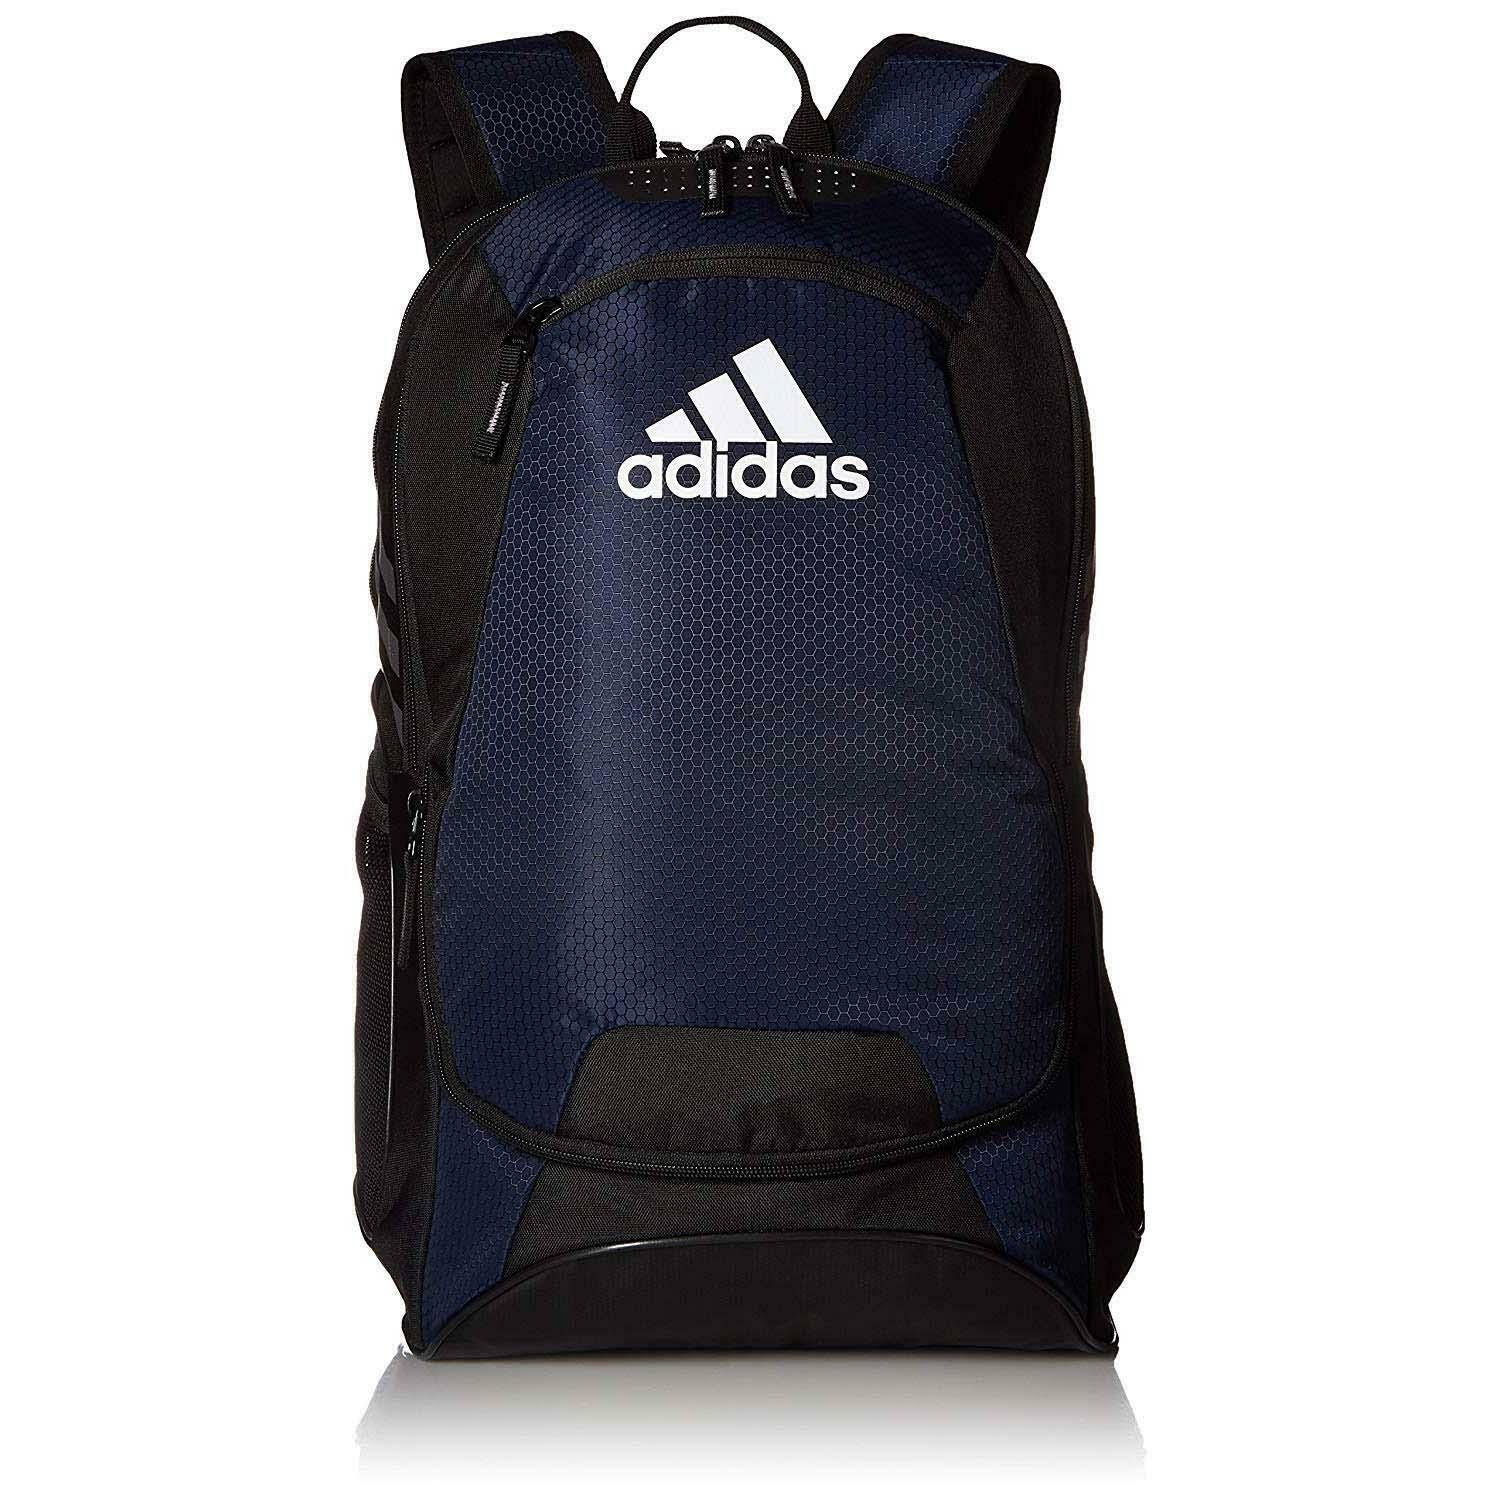 Adidas Stadium II Backpack - Navy